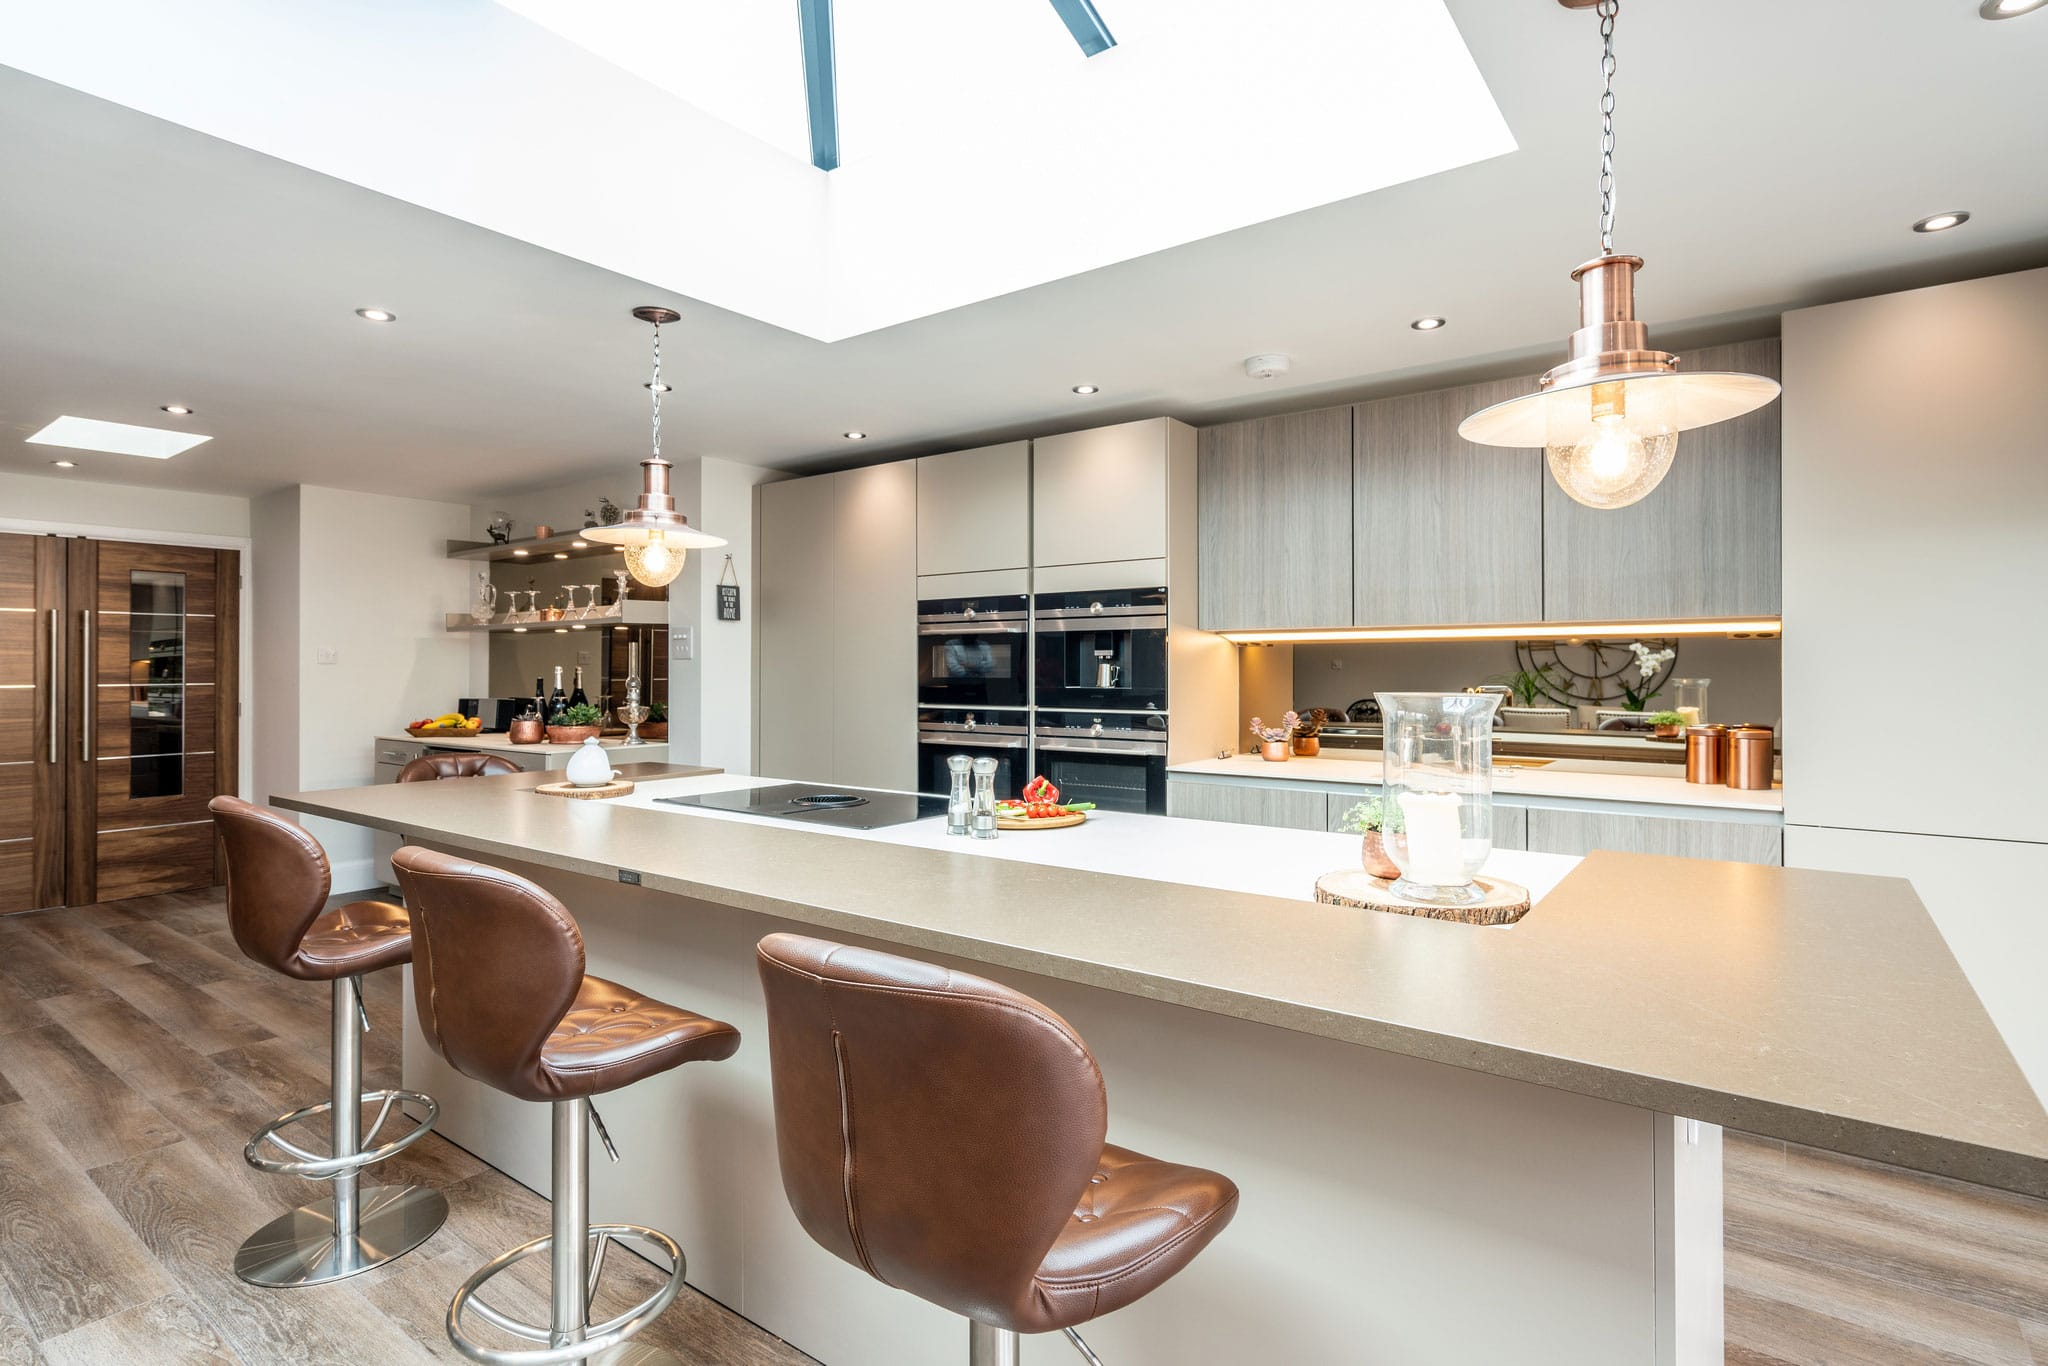 Image of Myers Touch Daniels Kitchen 01038 ZF 2442 14358 1 034 in A space designed for socializing - Cosentino